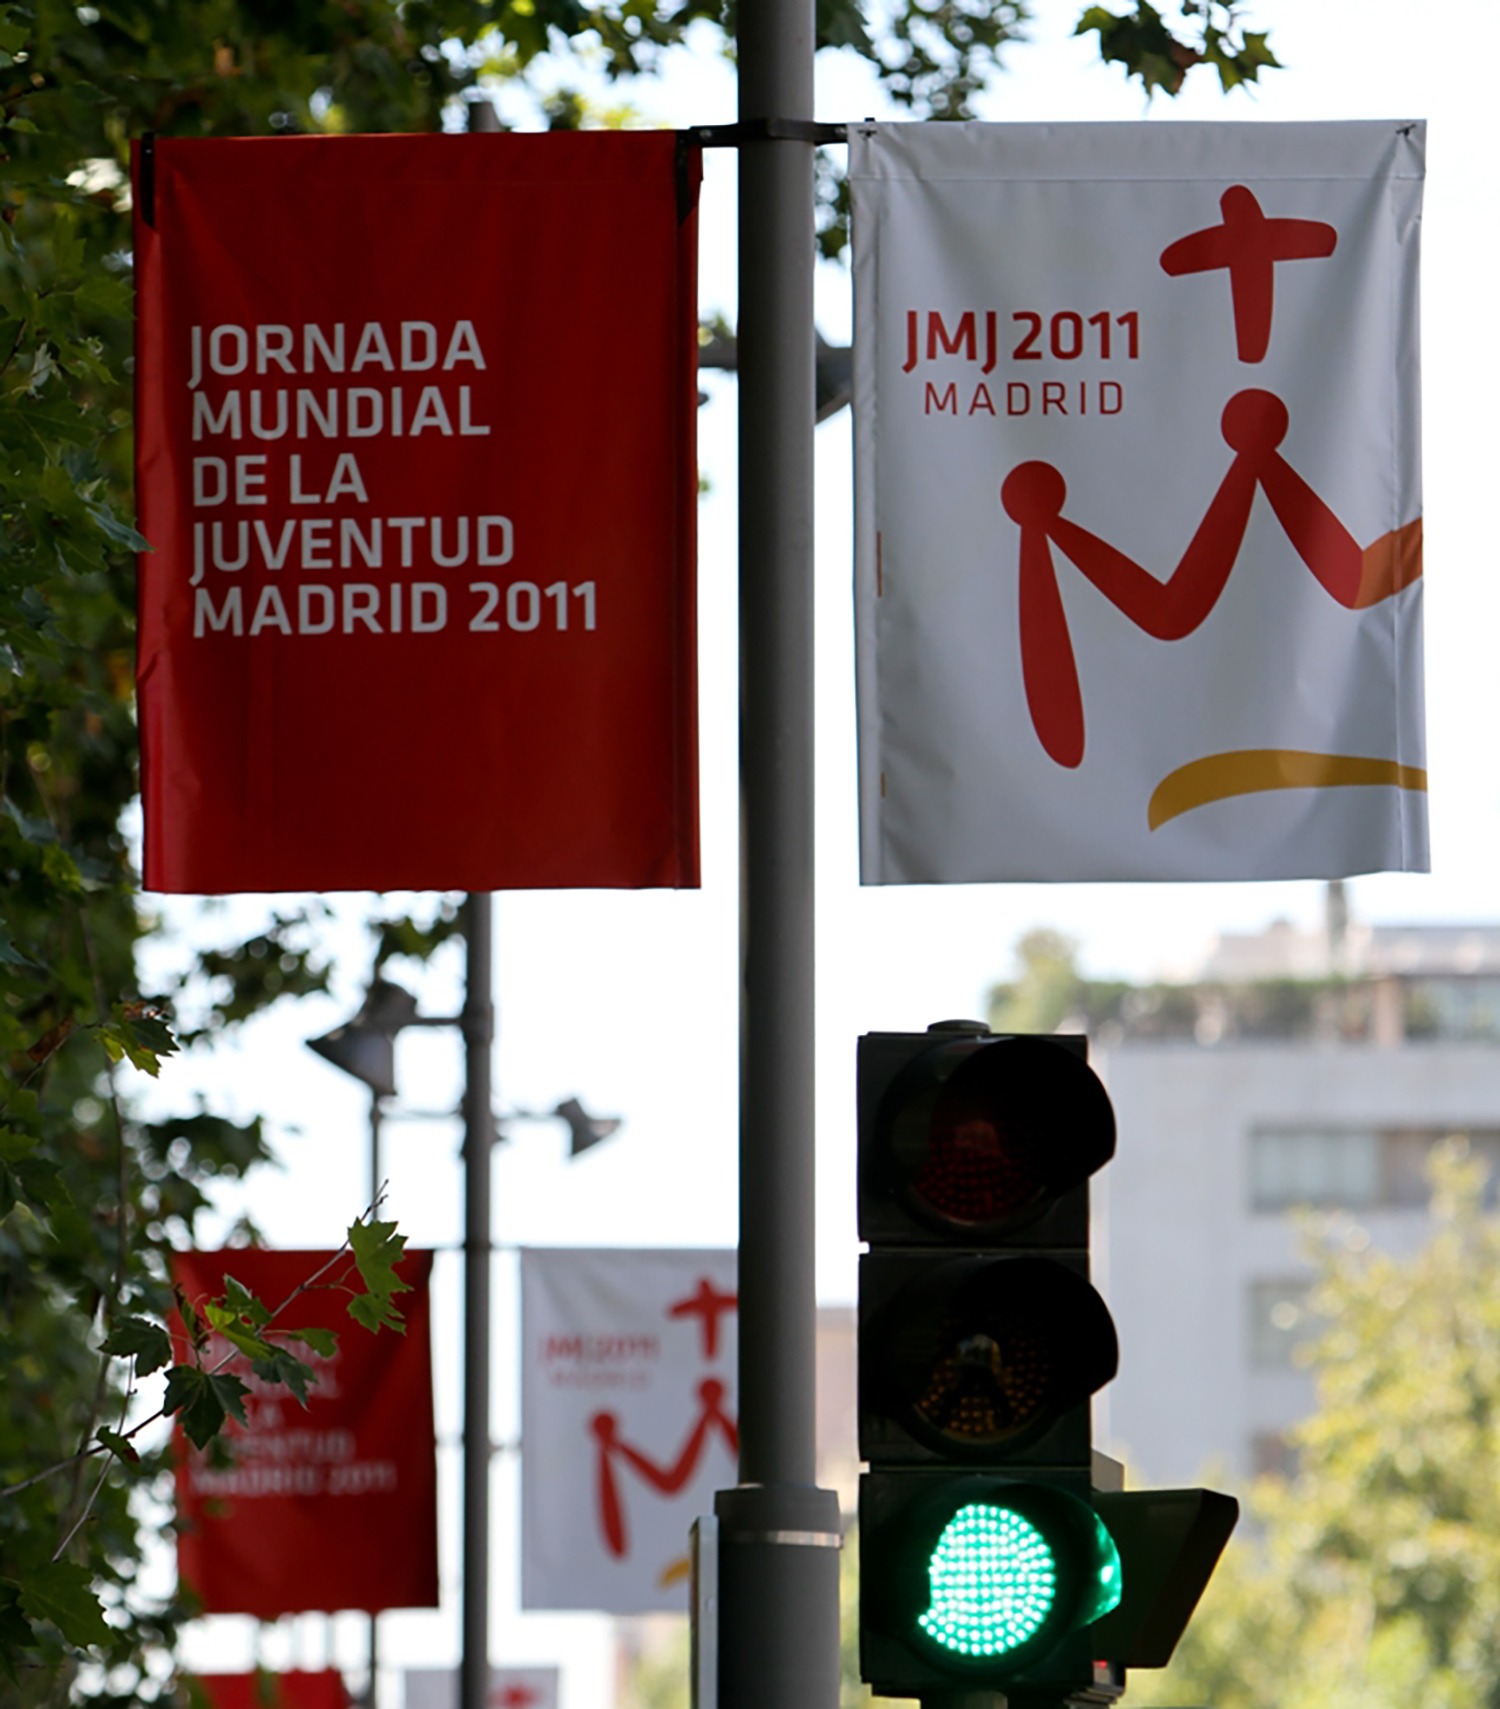 JMJ_2011_MADRID_09